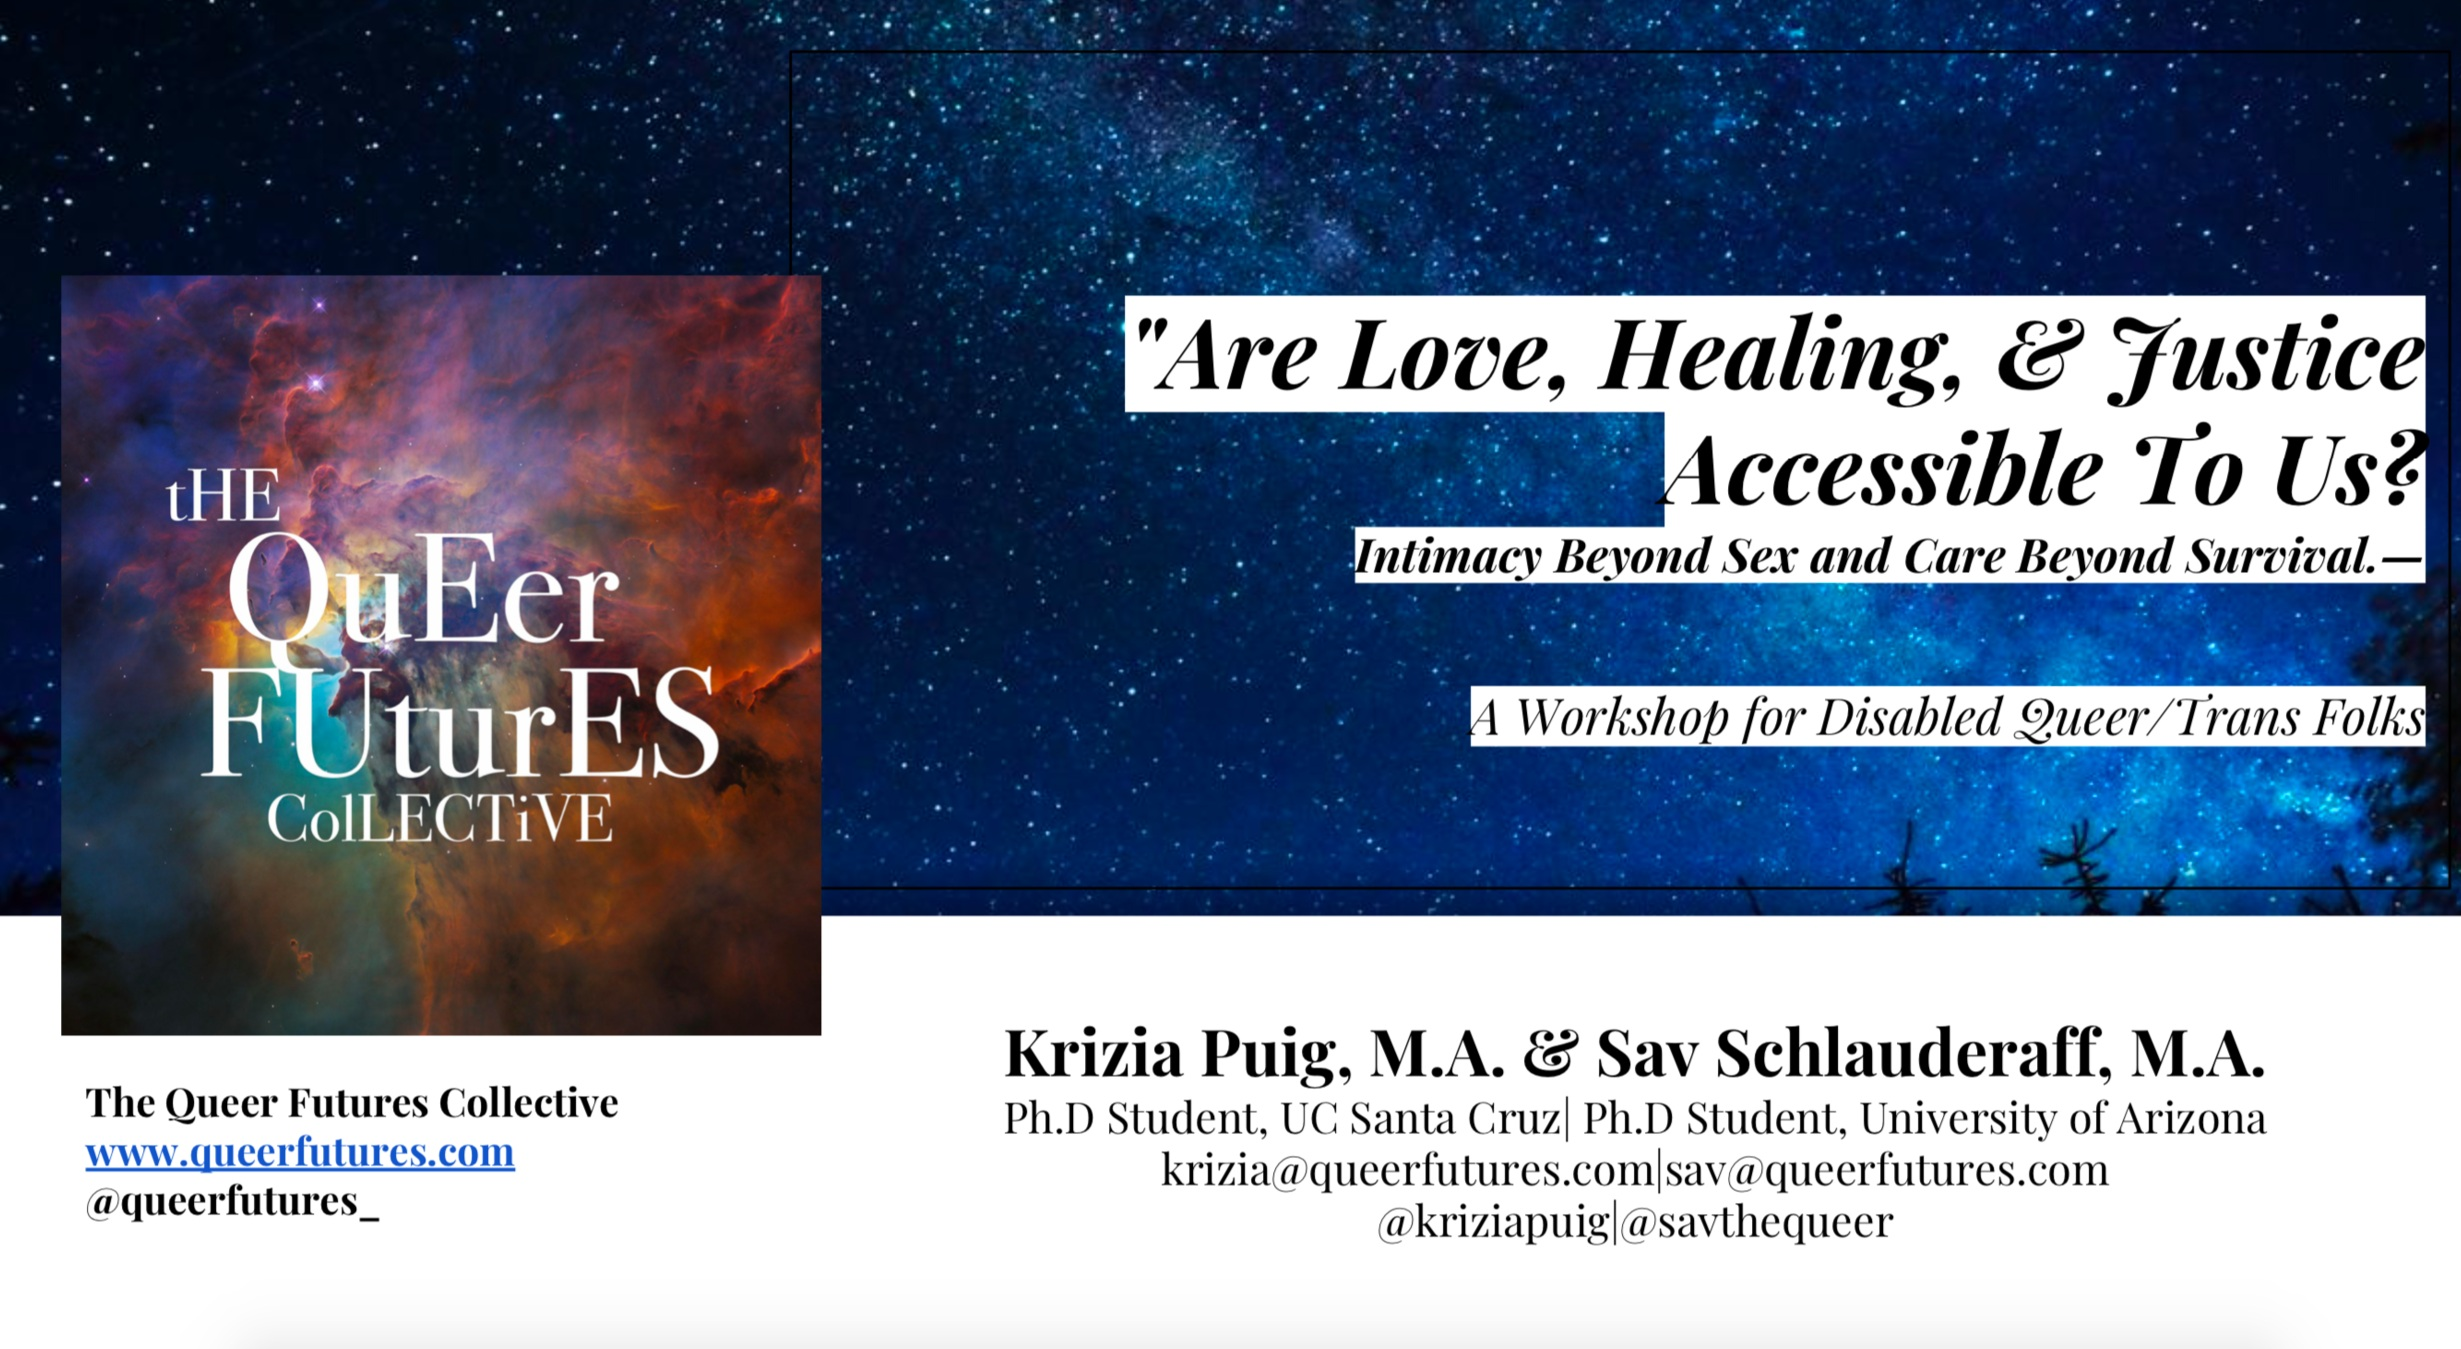 Are Love, healing & justice accessible to us?  - Click here for a PDF of the slide show!